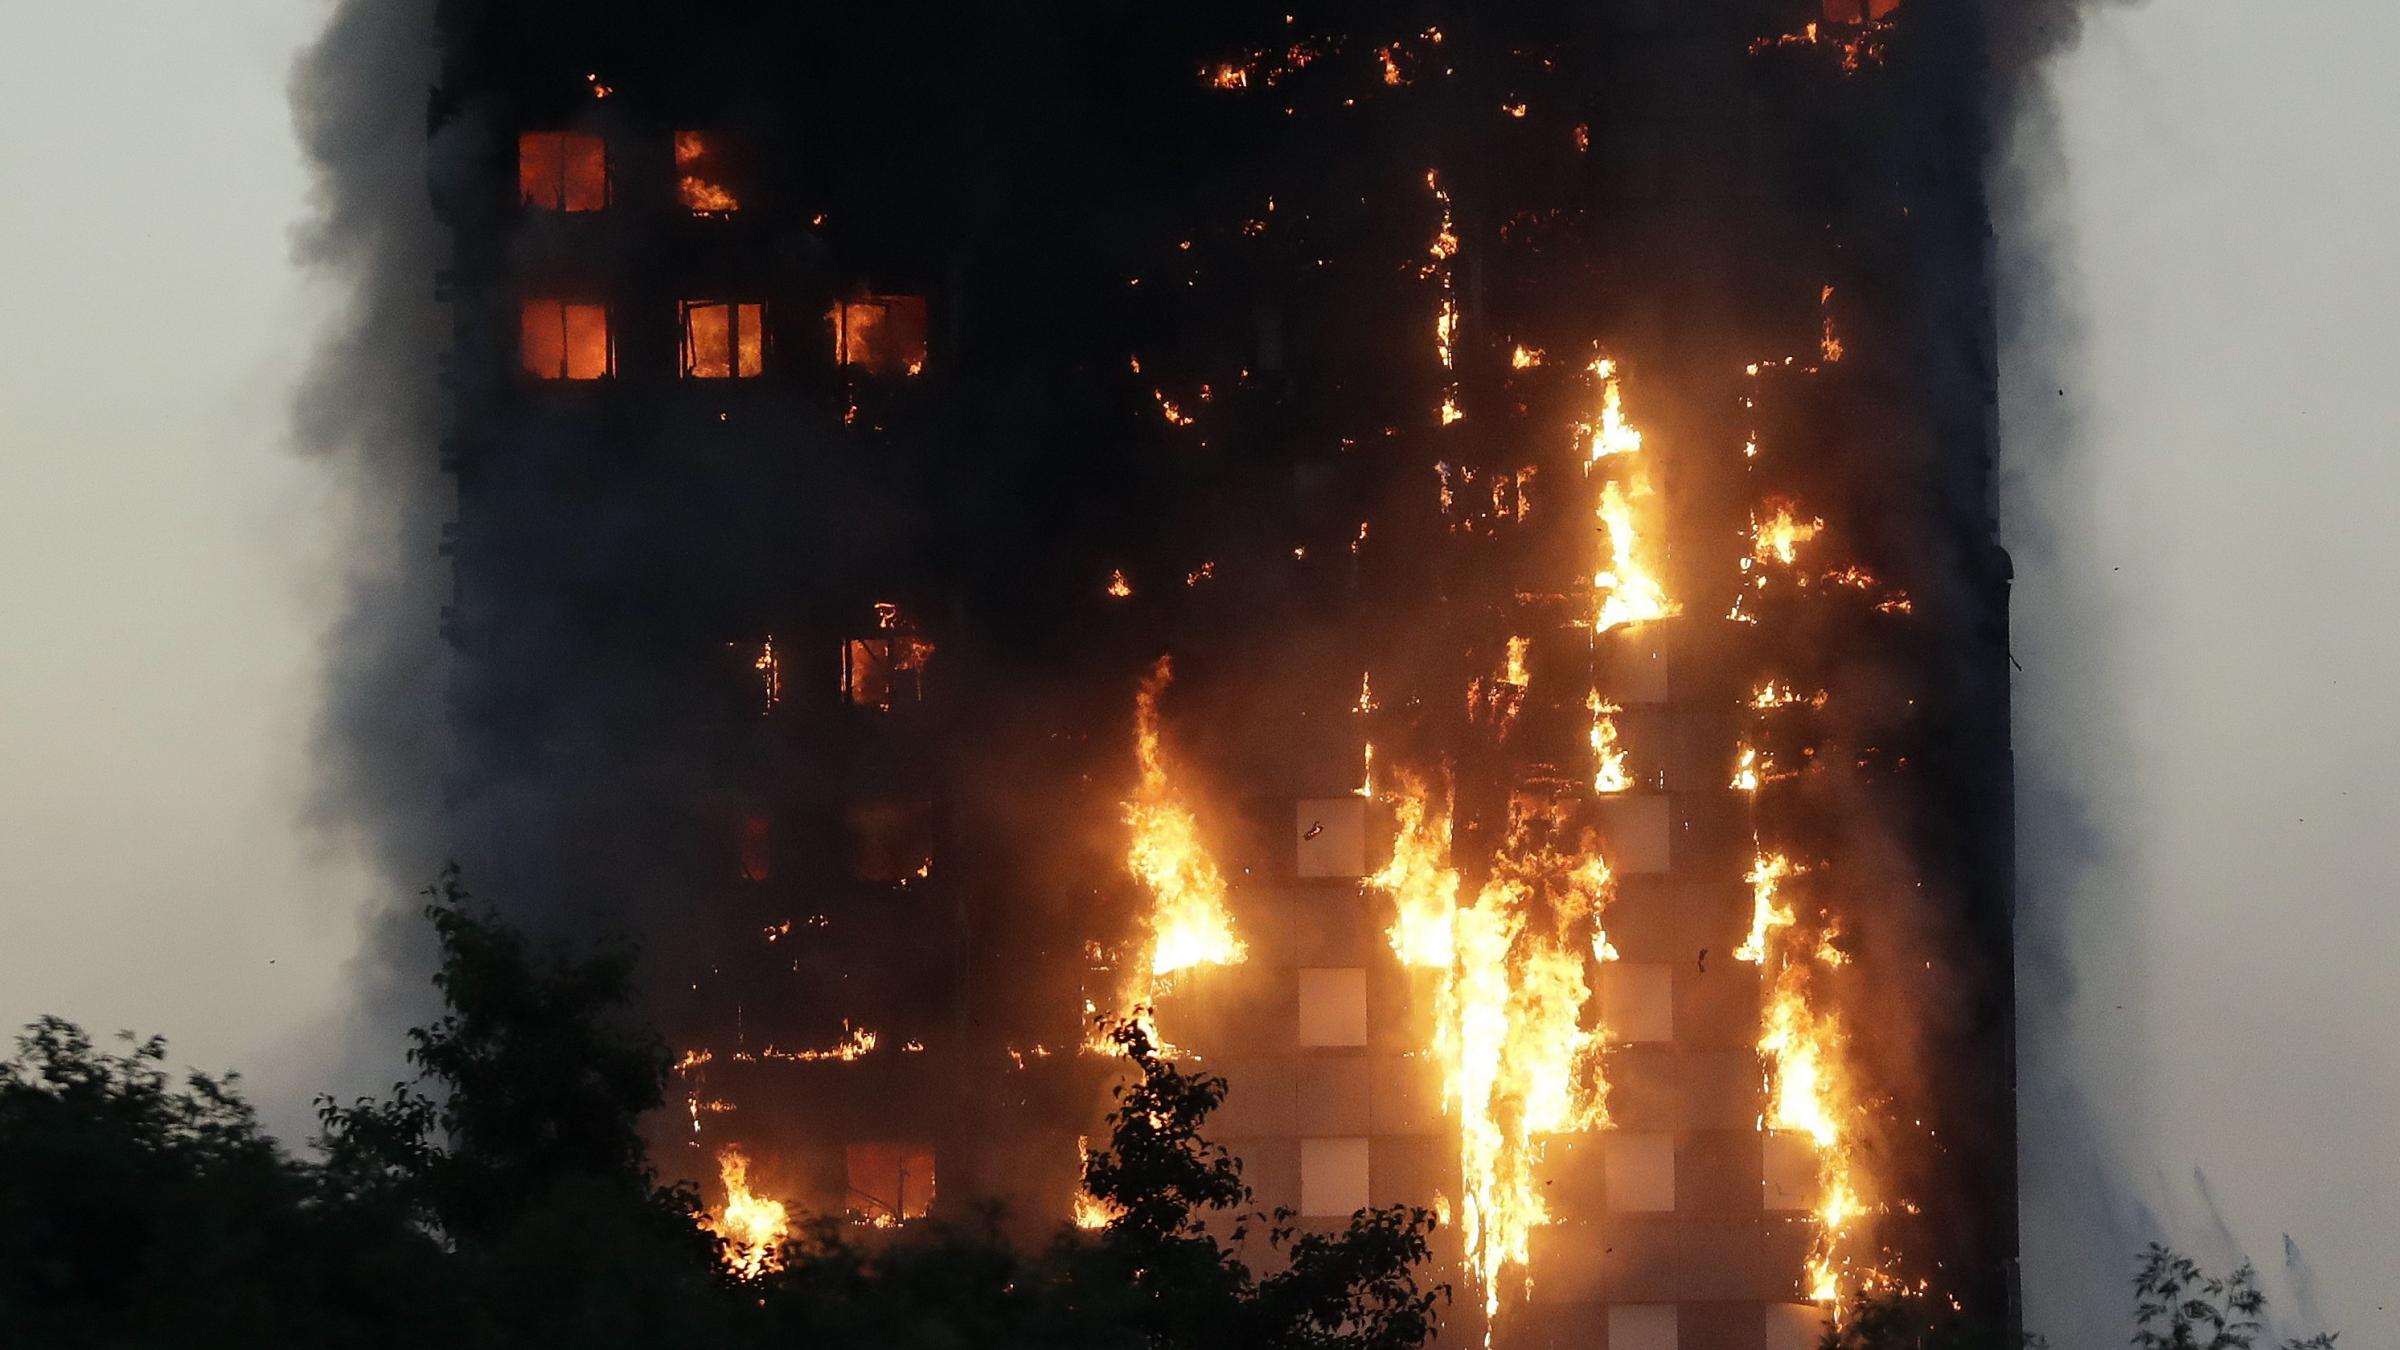 12 dead as fire engulfs London tower block